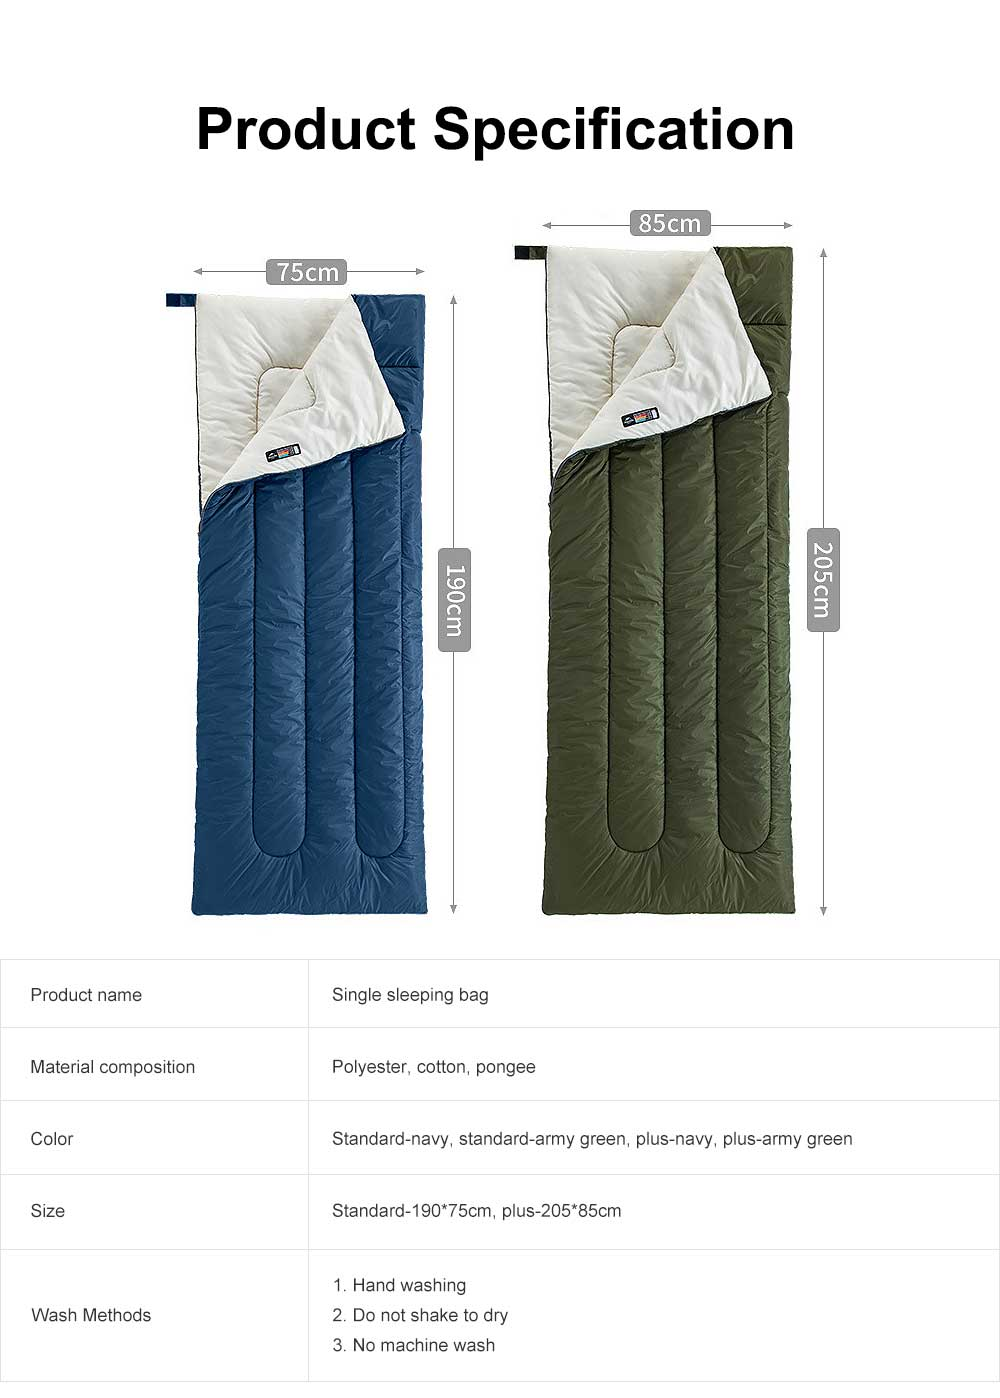 Breathable Sleeping Bag for Adults Indoors & Outdoors Use, Water-proof Single Sleeping Bags are Perfect for Hiking Backpacking Camping 5